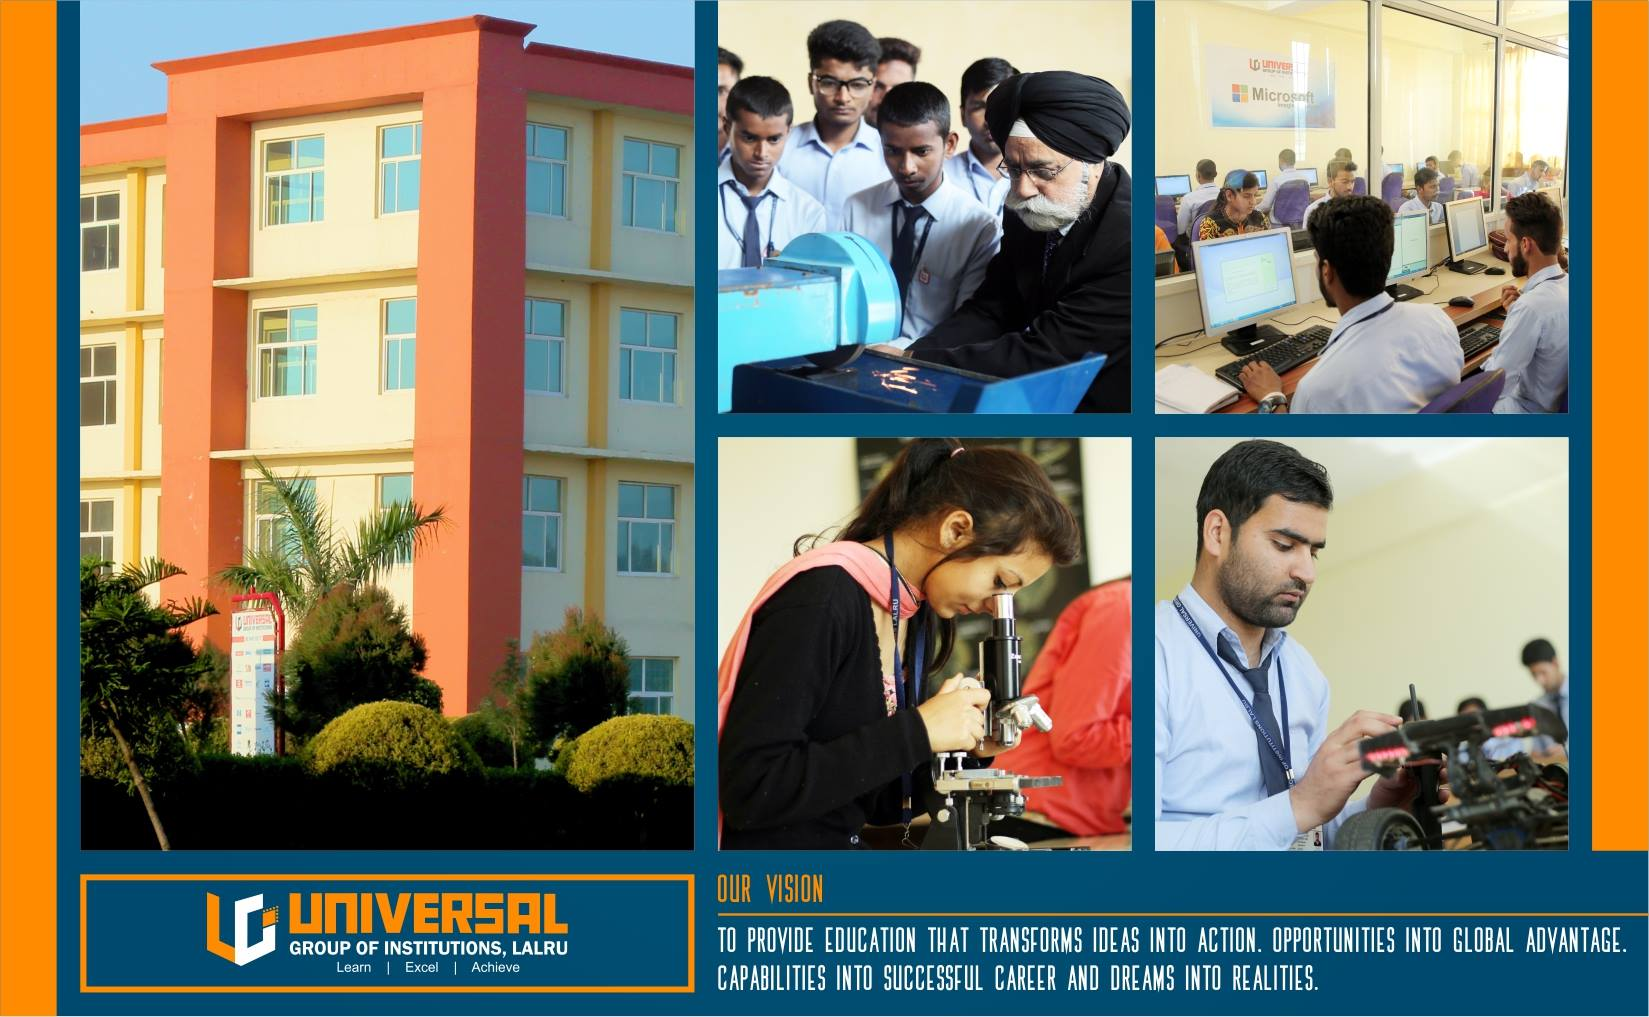 Universal Group of Institutions